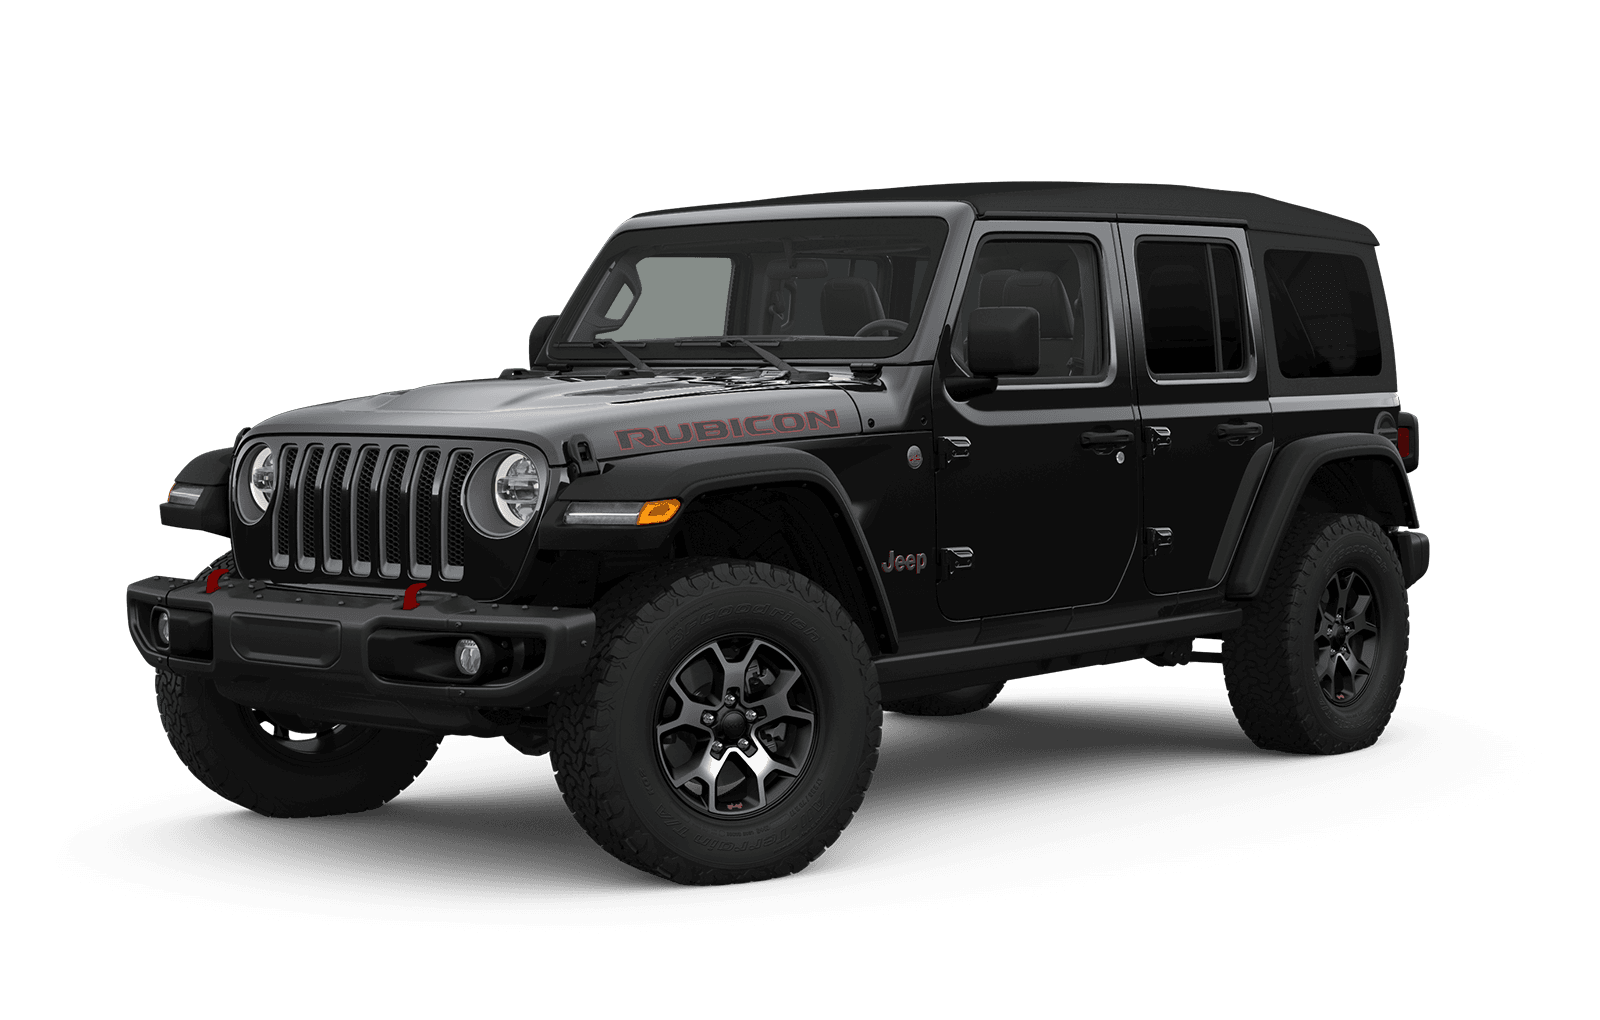 2019 Jeep Wrangler Full View in black with Wheels